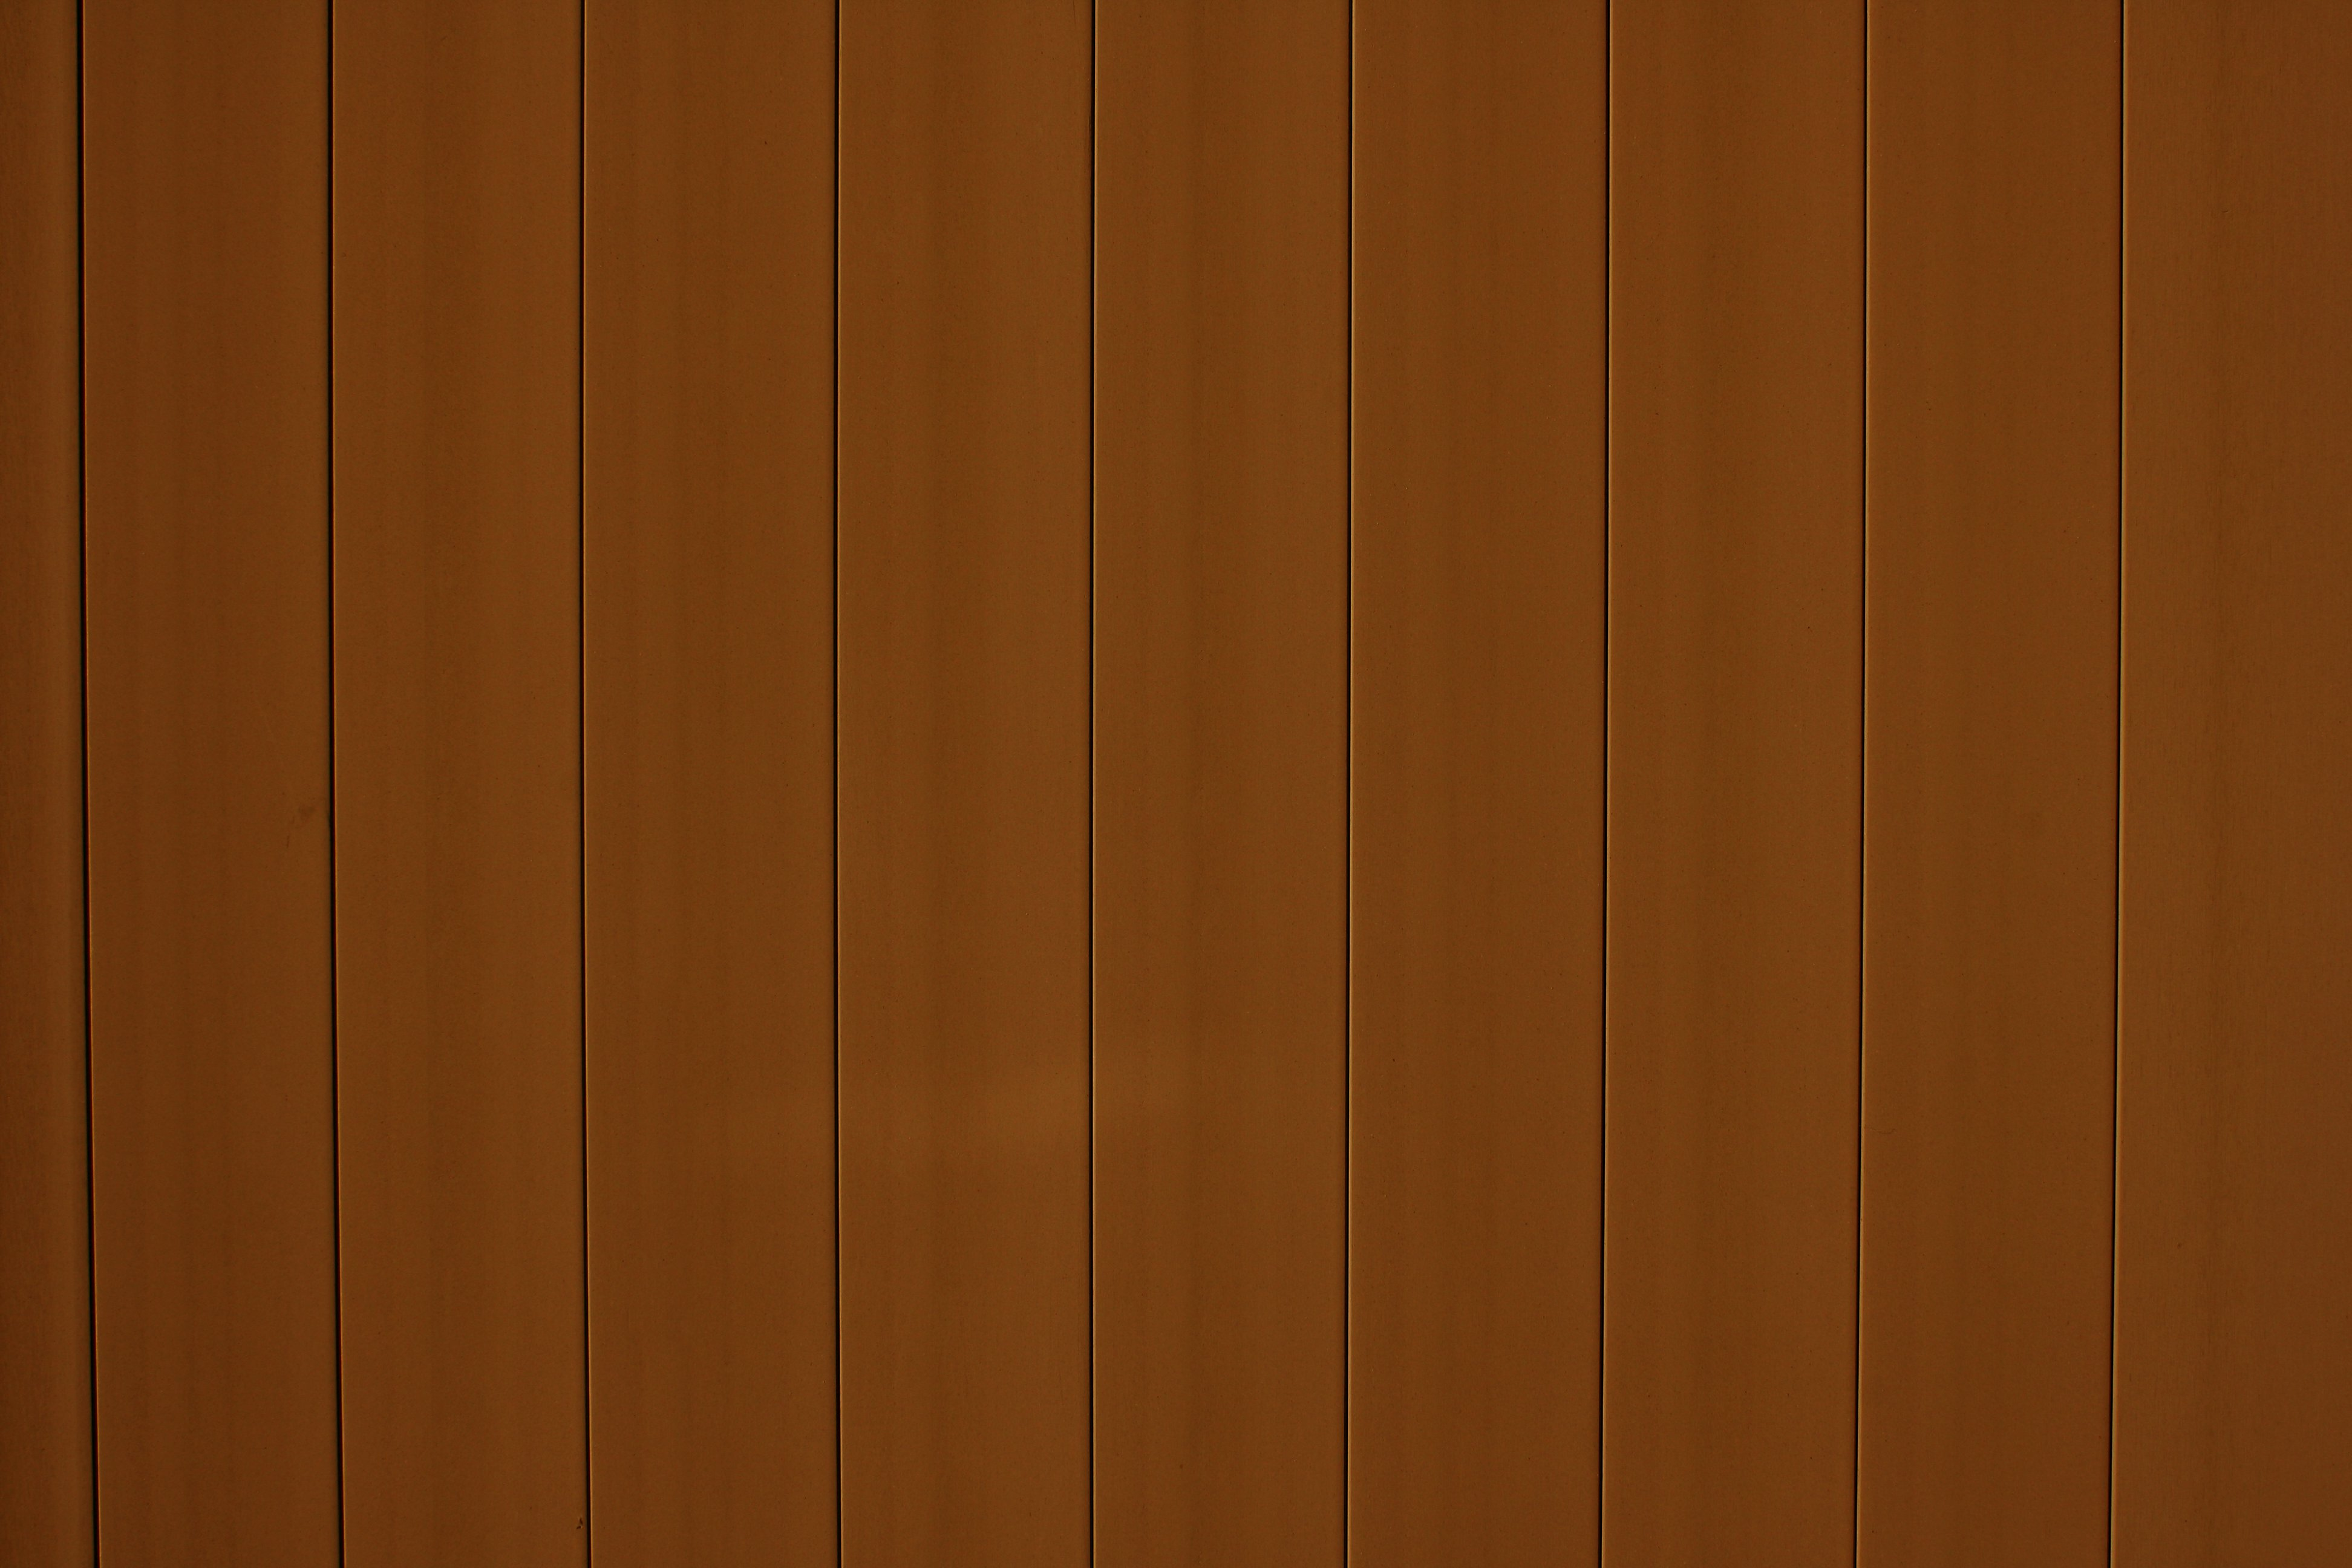 Brown Plastic Fence Boards Texture Picture | Free Photograph | Photos ...